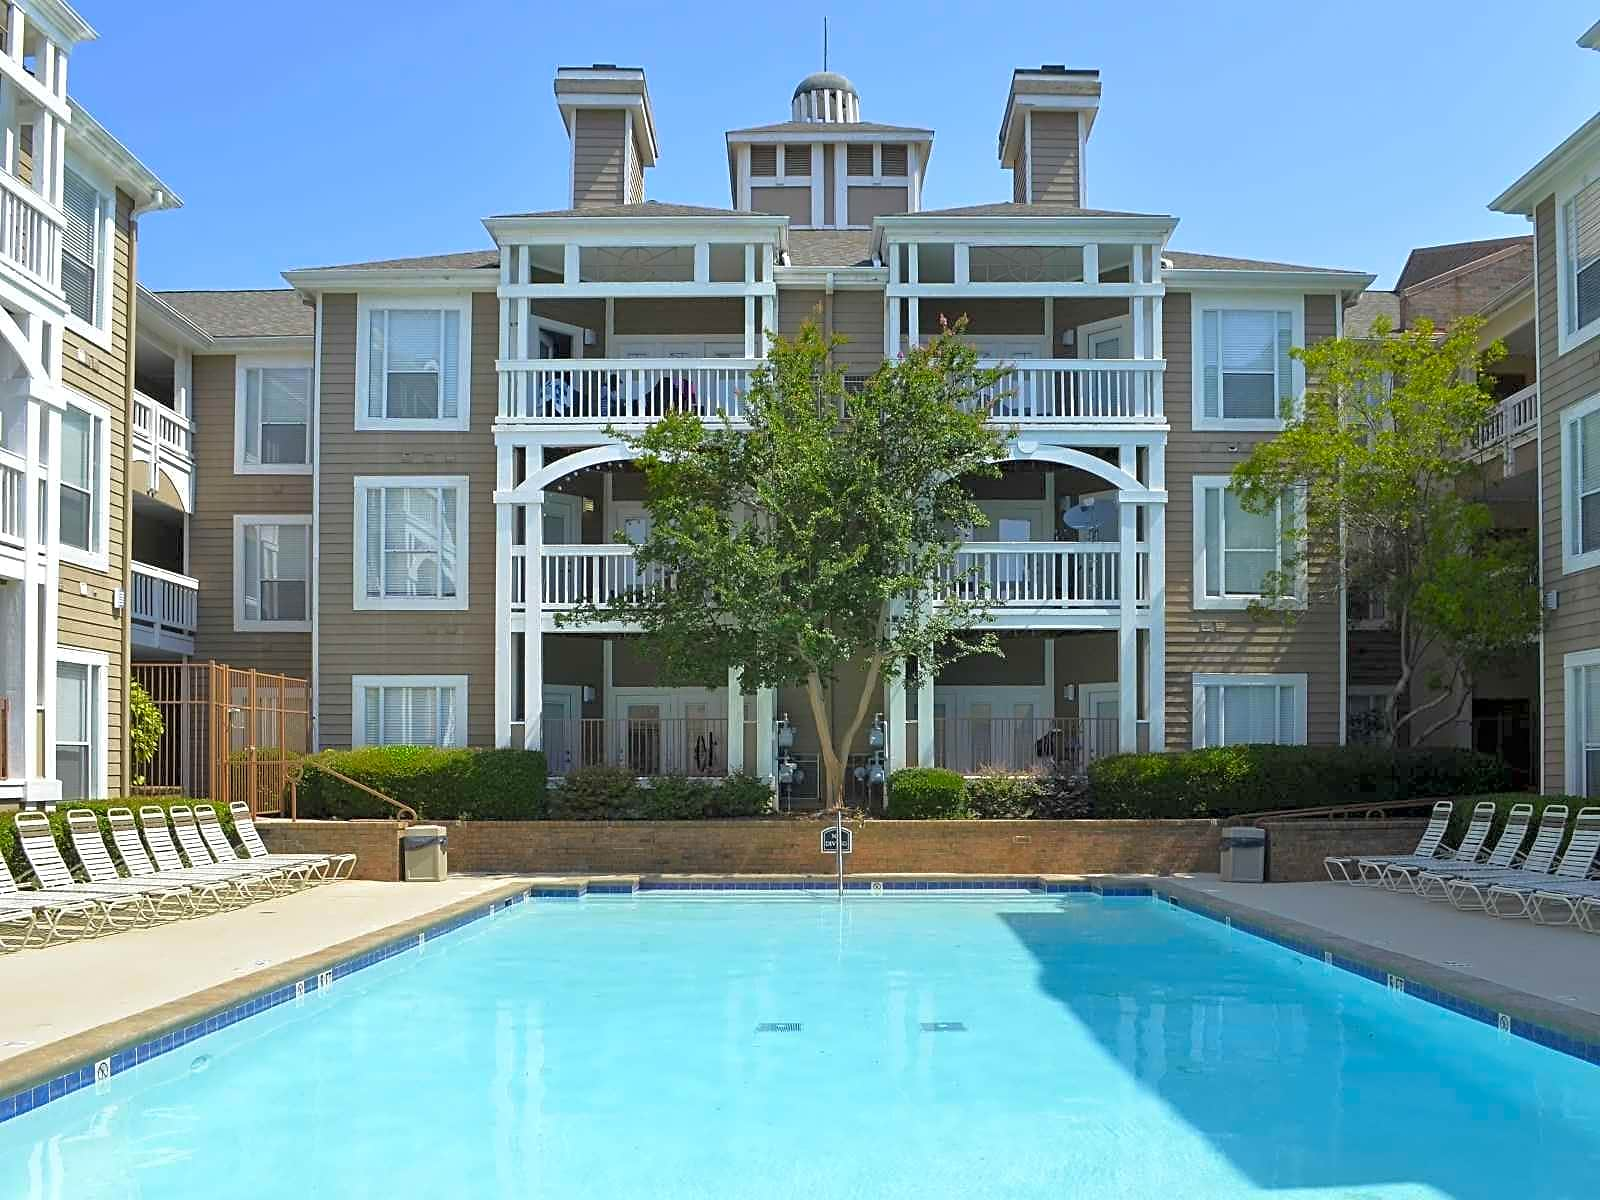 Pet Friendly Apartments In Sandy Springs Ga Pet Friendly Houses For Rent